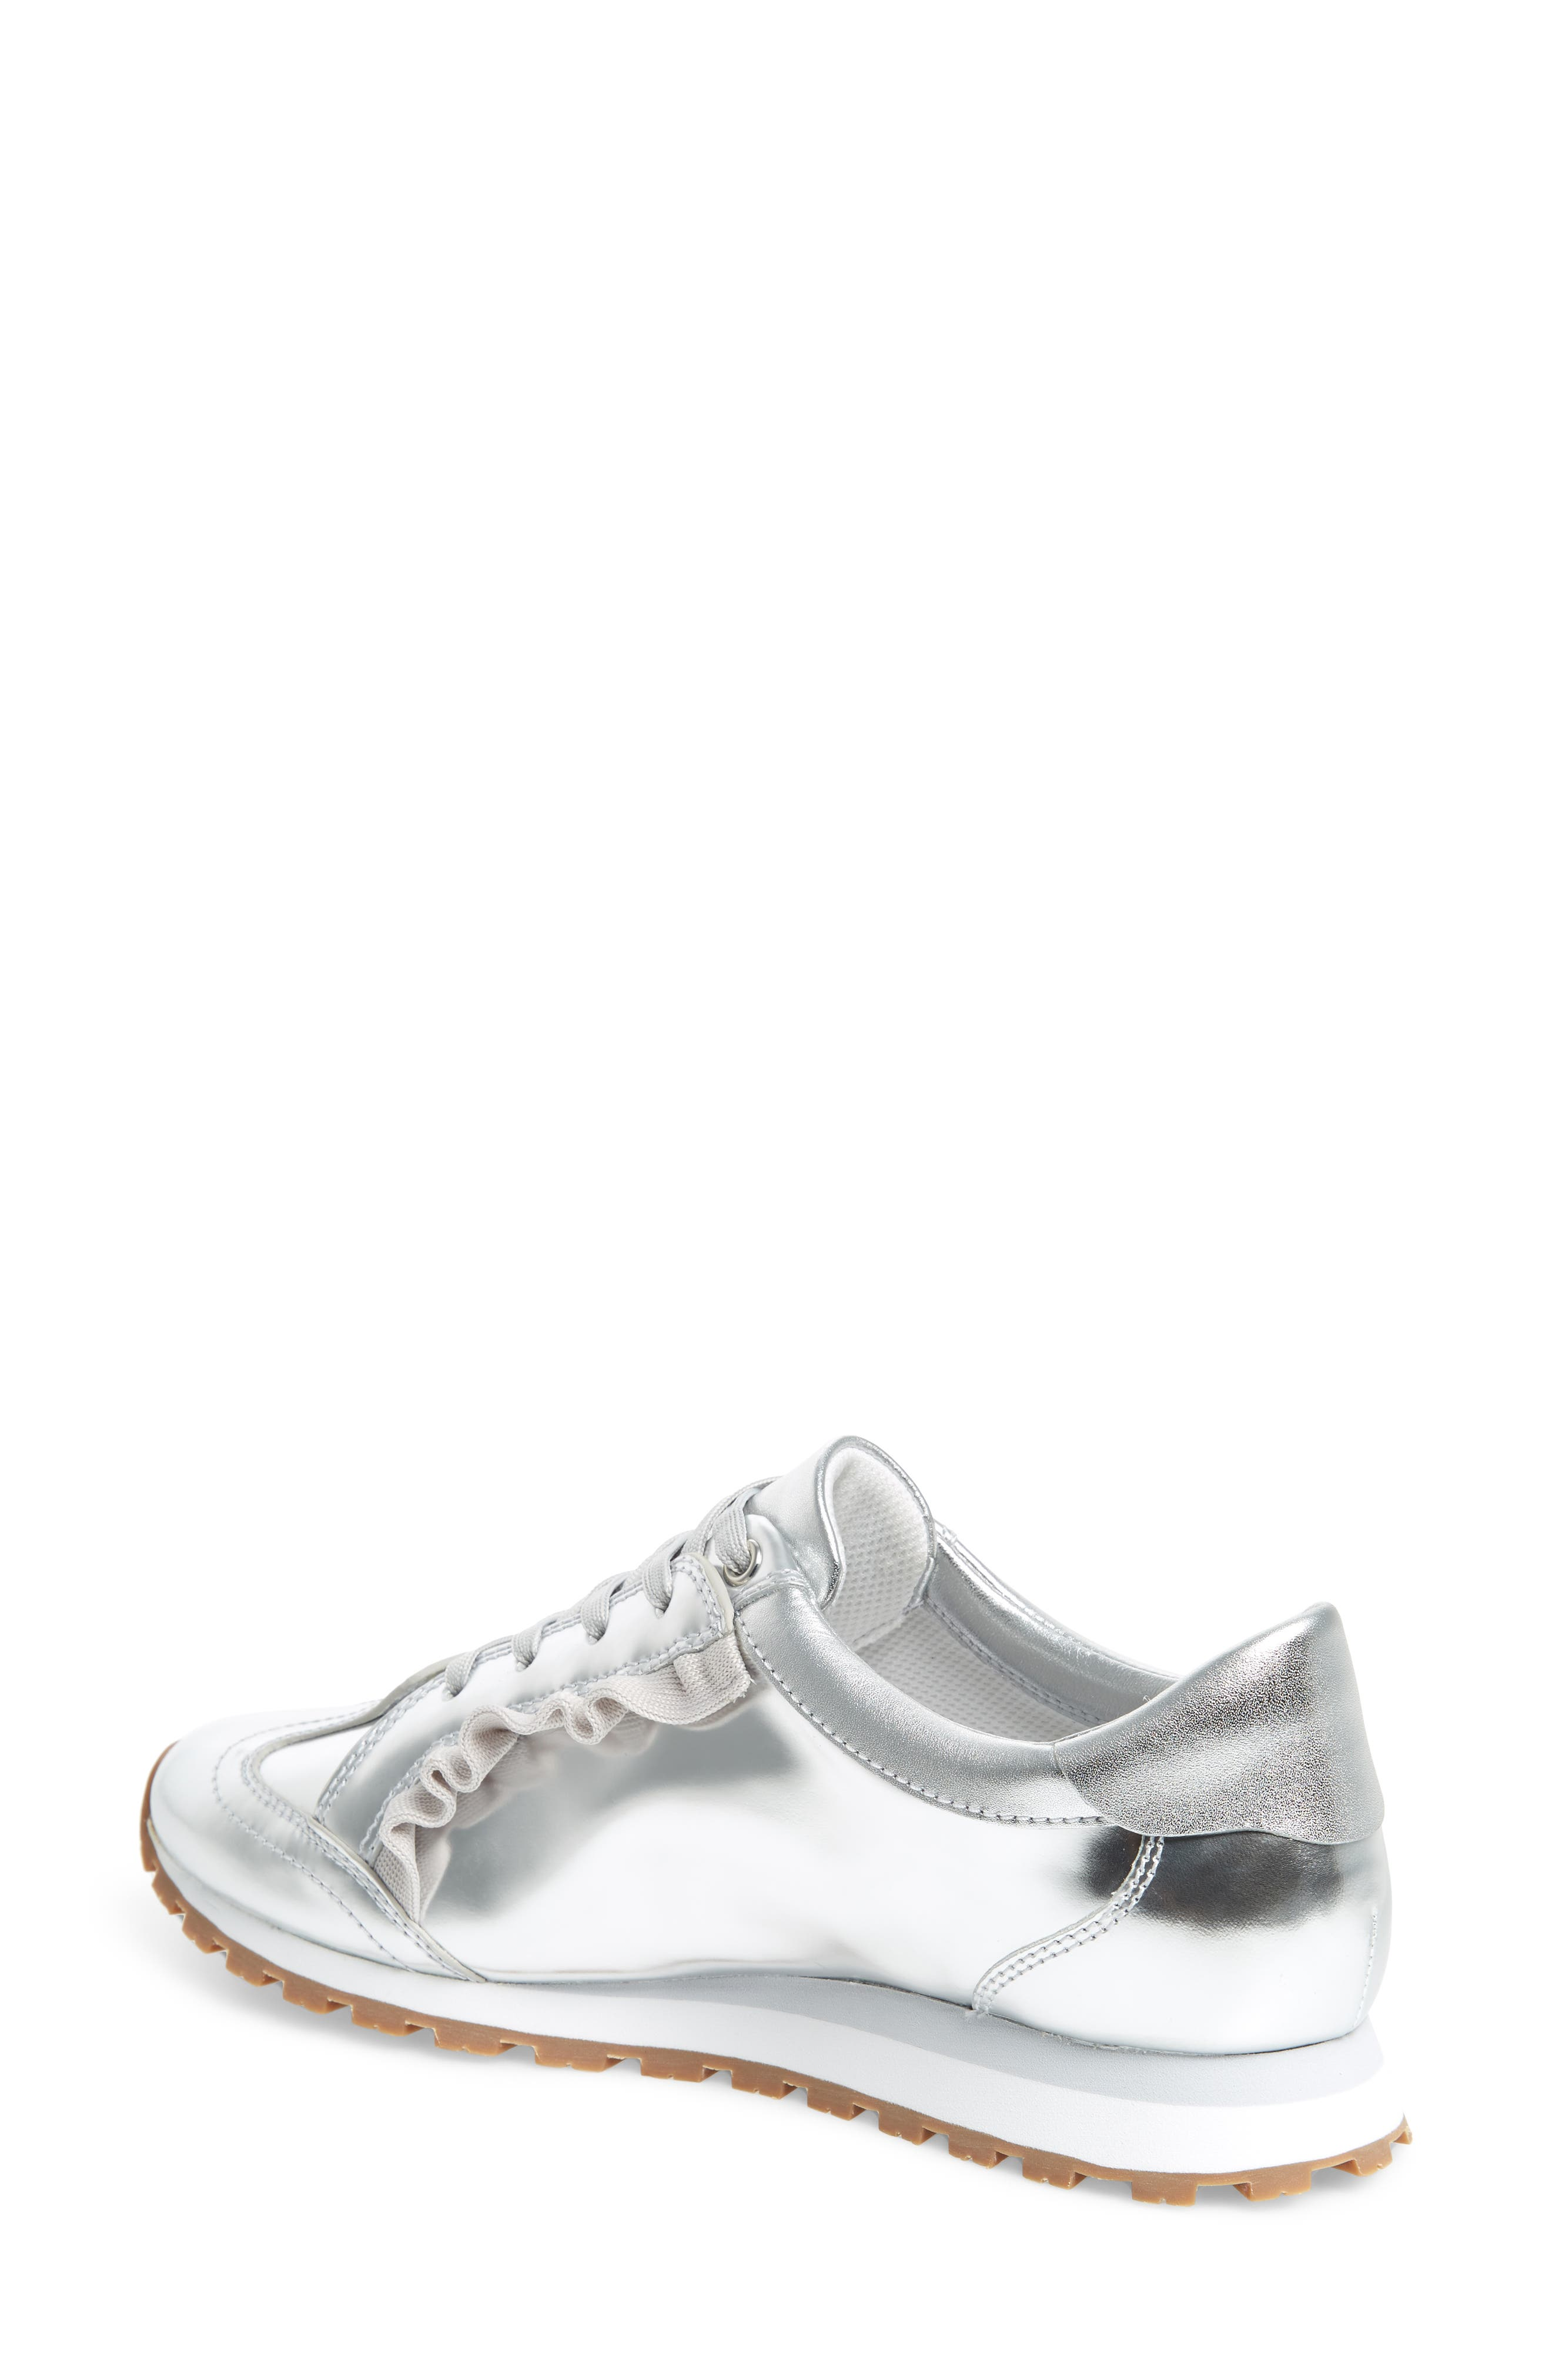 TORY SPORT,                             Ruffle Sneaker,                             Alternate thumbnail 2, color,                             SILVER/ GRAY